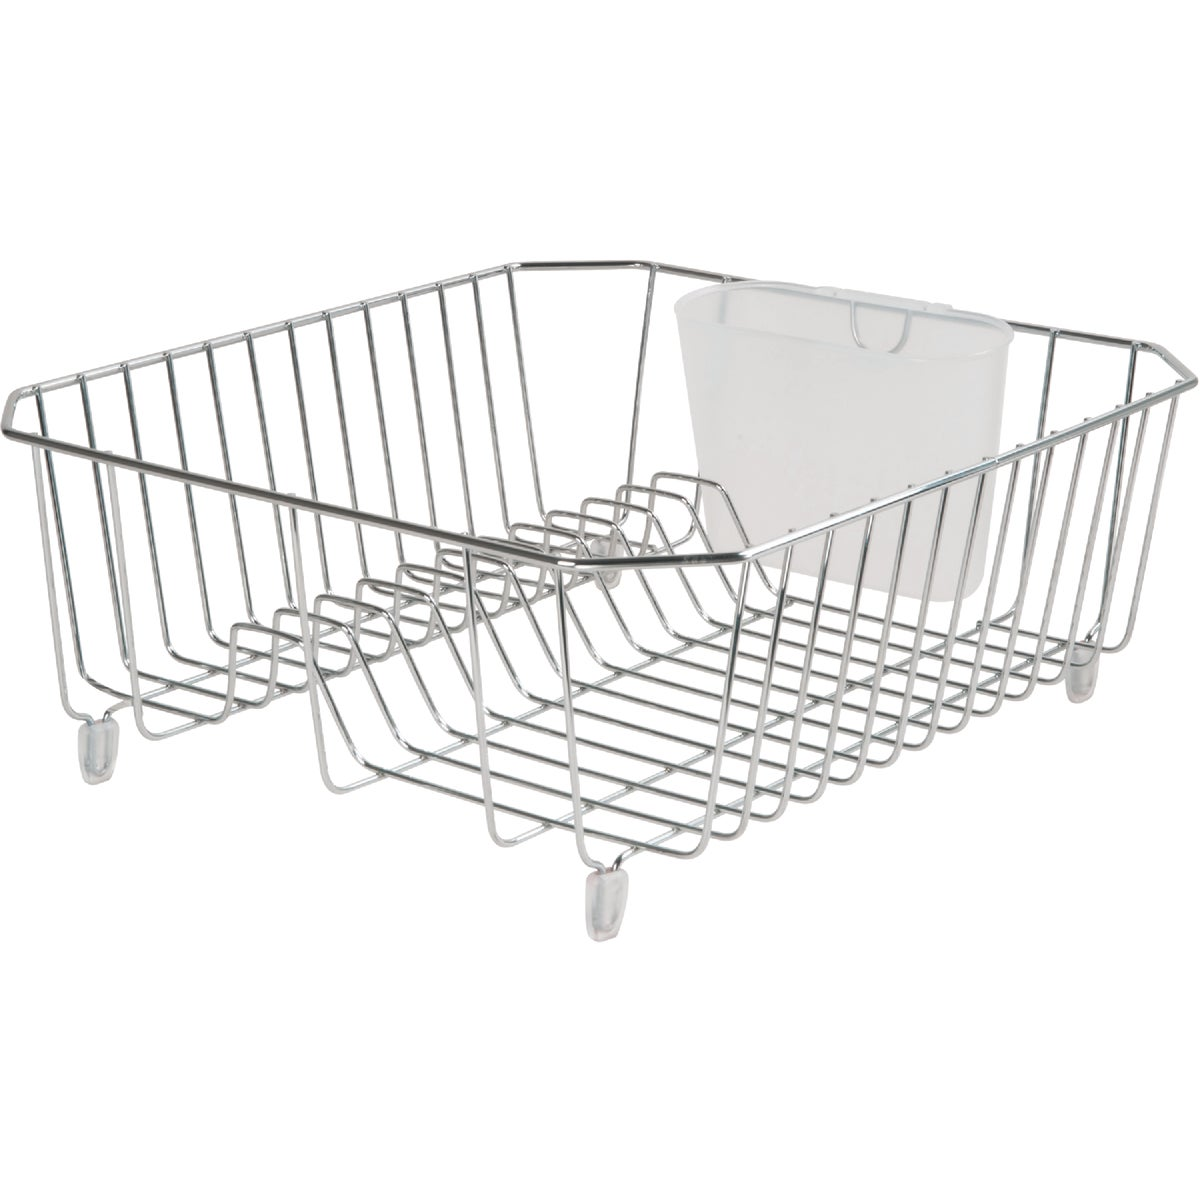 CHROME TWIN DISH DRAINER - 6008-AM-CHROM by Rubbermaid Home